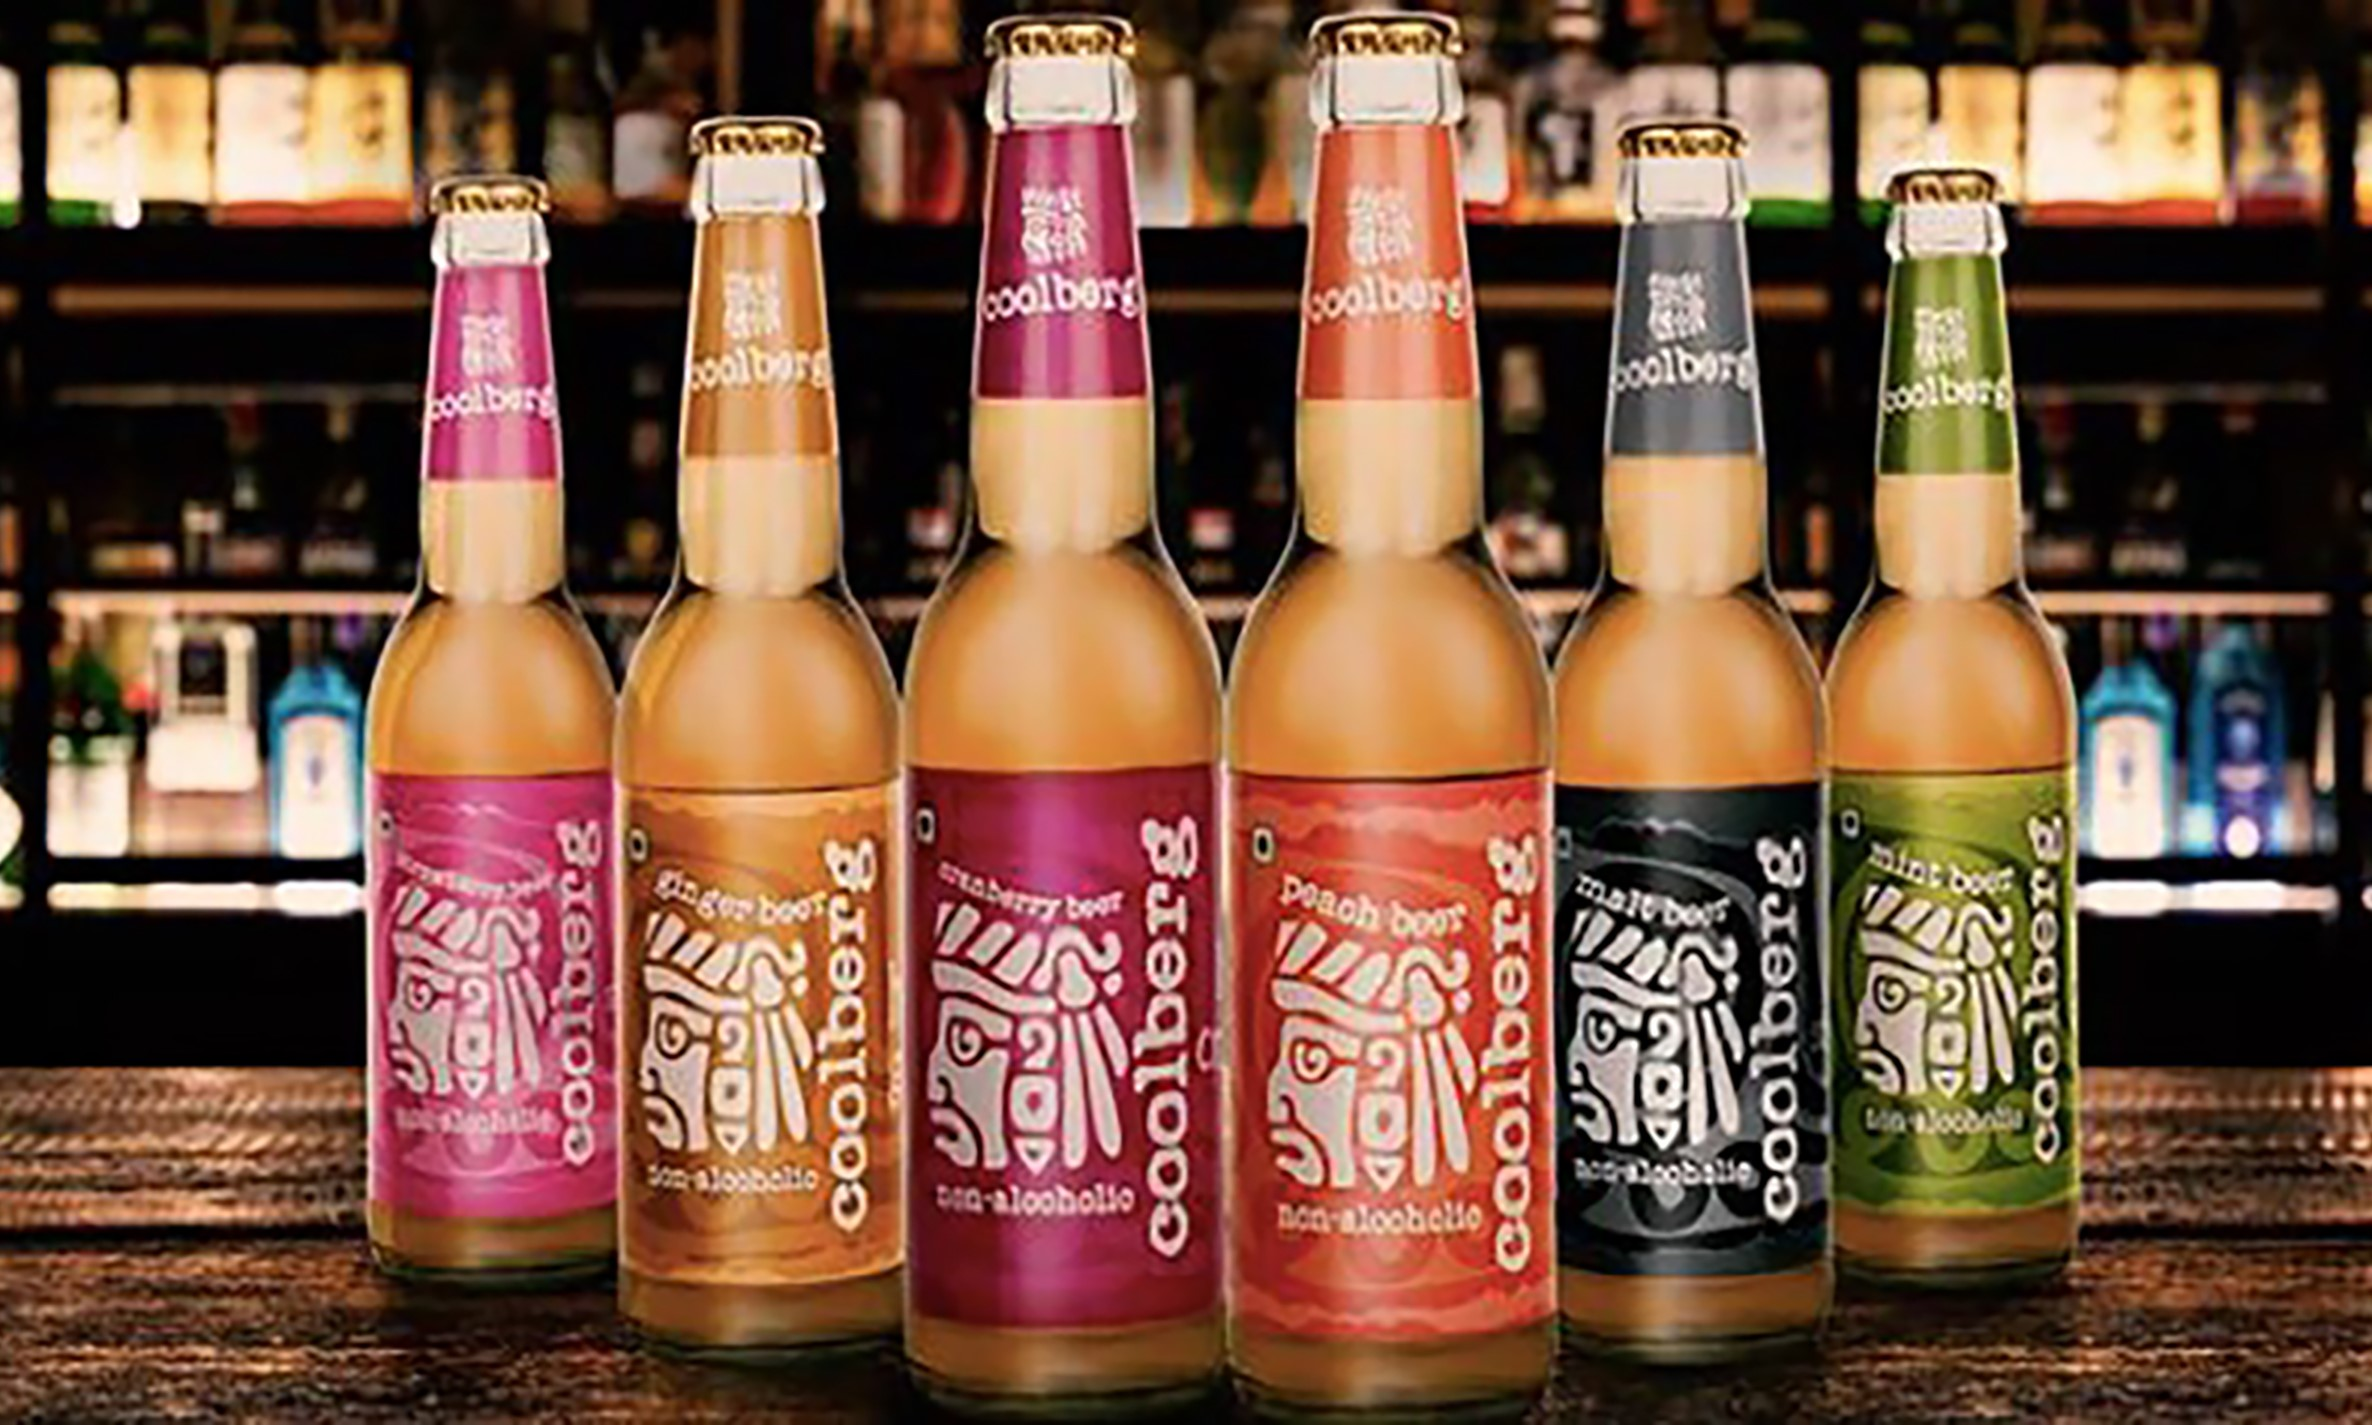 Coolberg - India's first Crafted Zero Alcohol Beer